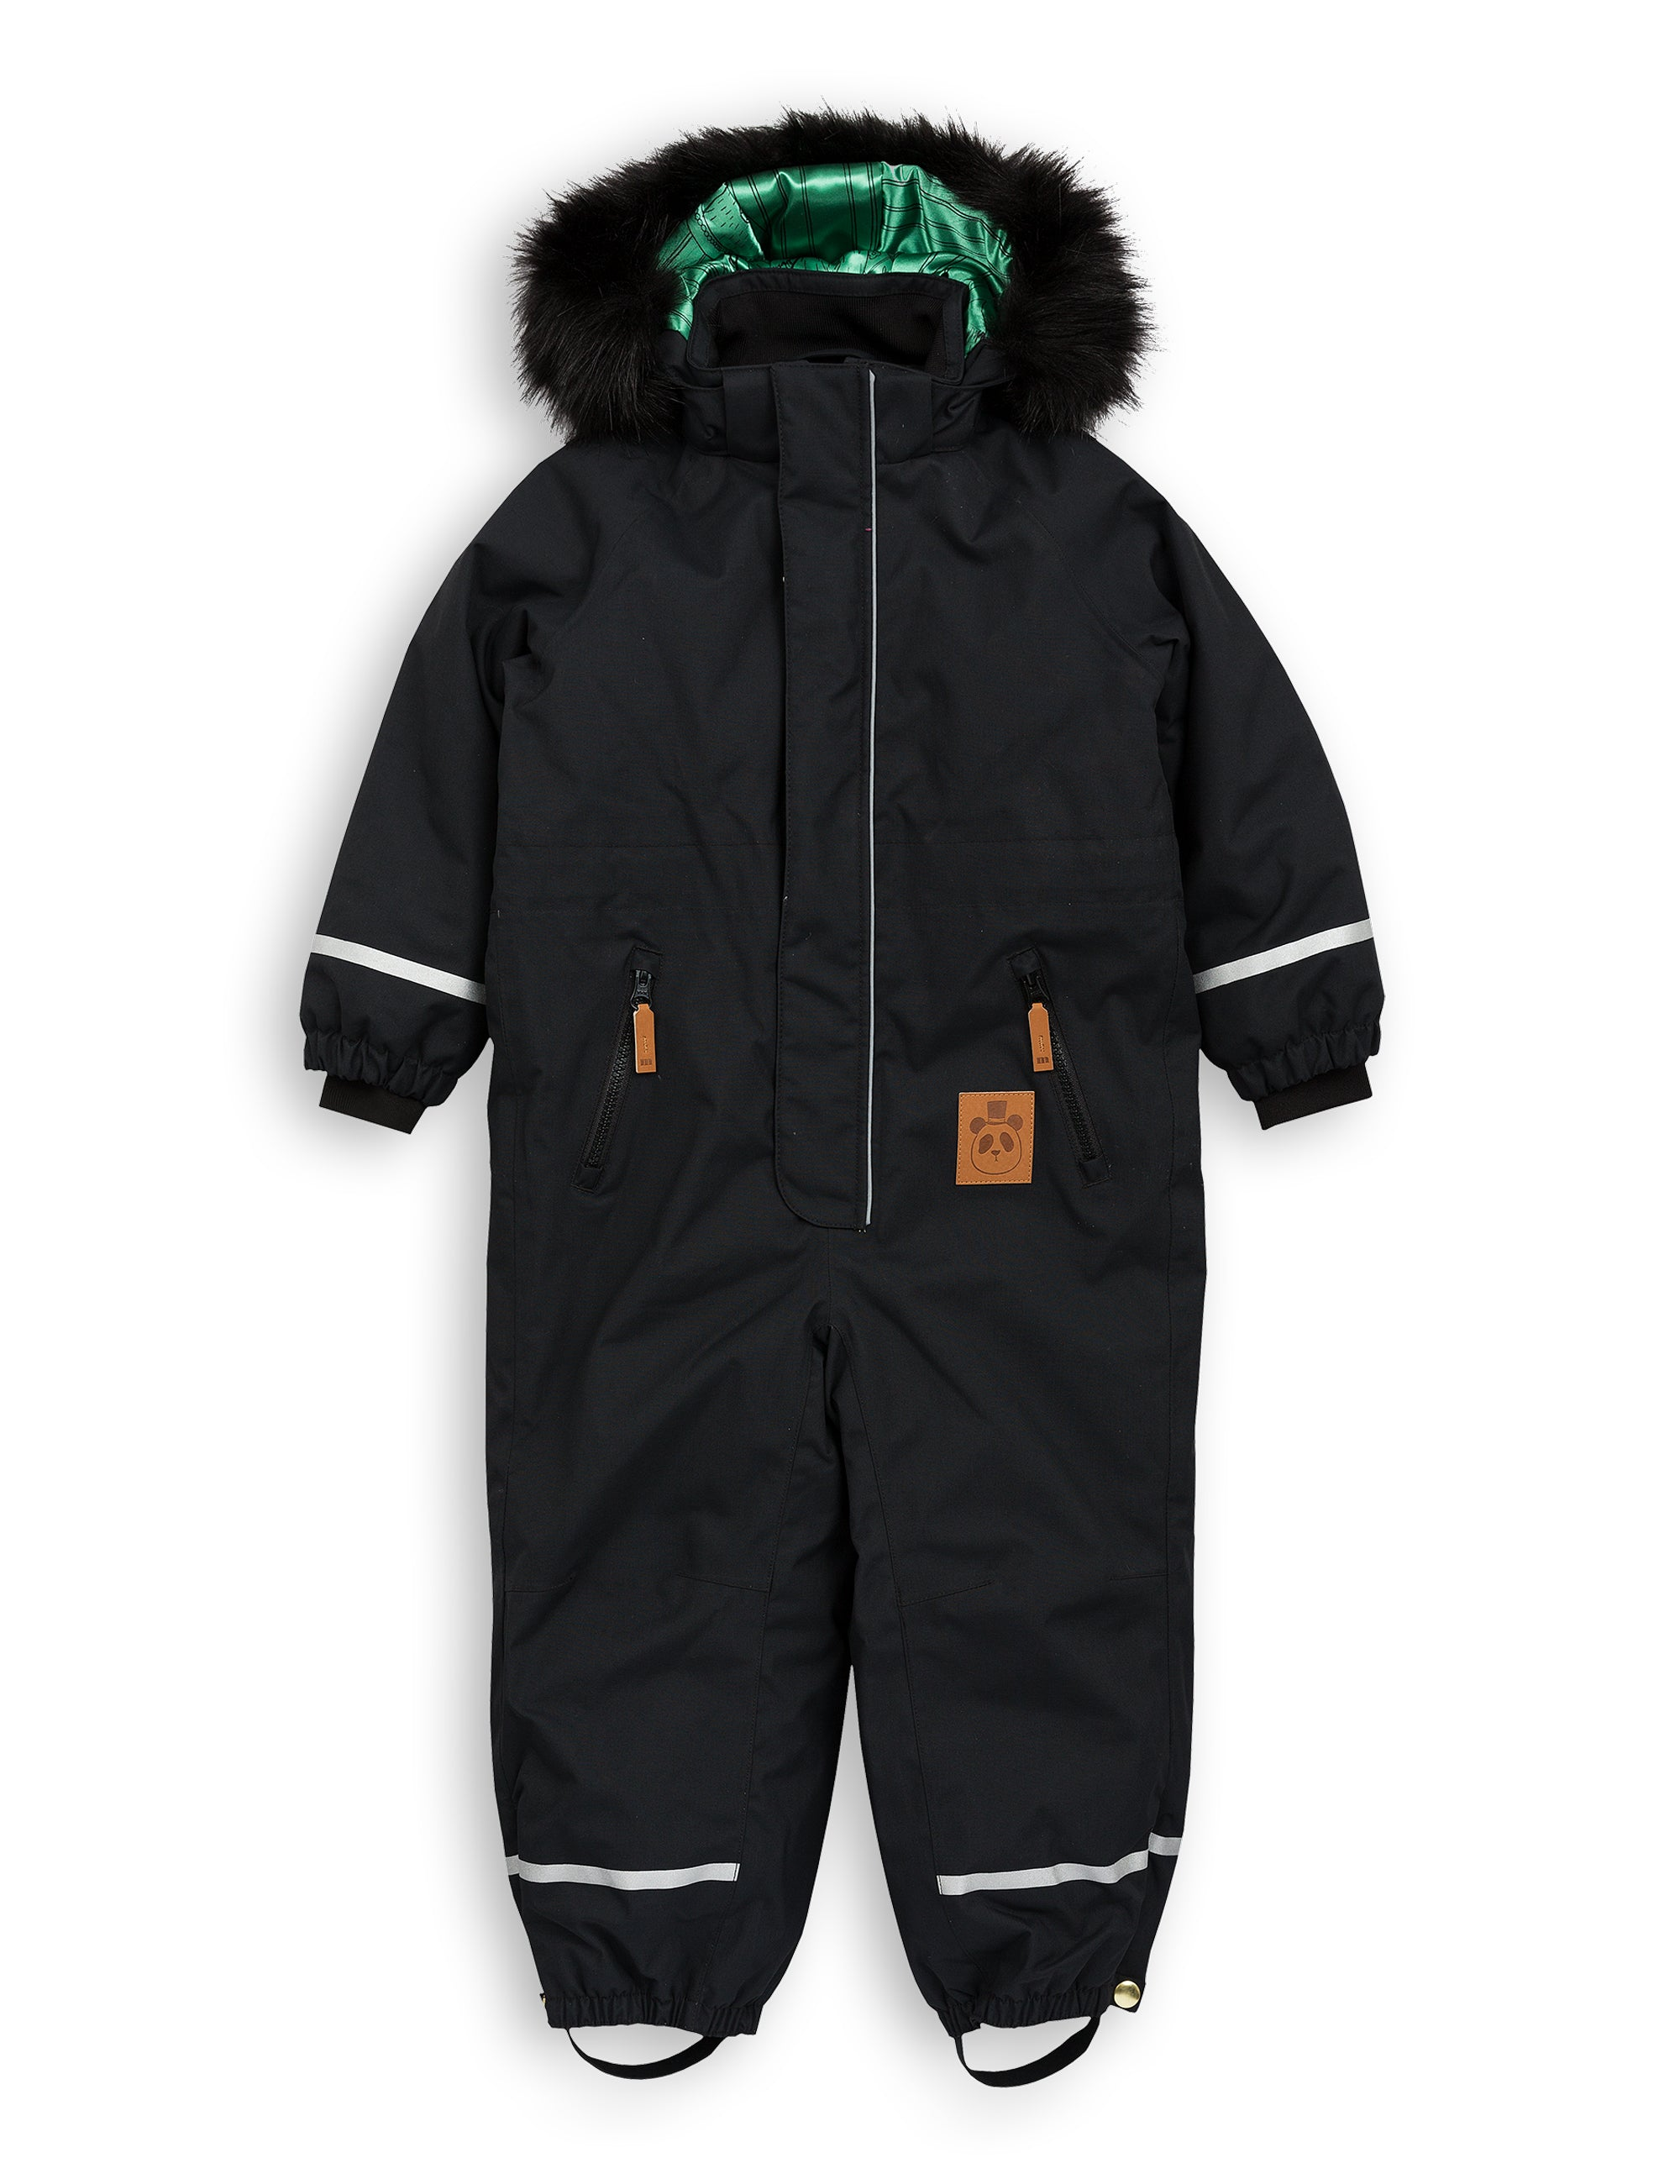 Mini Rodini - Kebnekaise Fox Family Overall Black